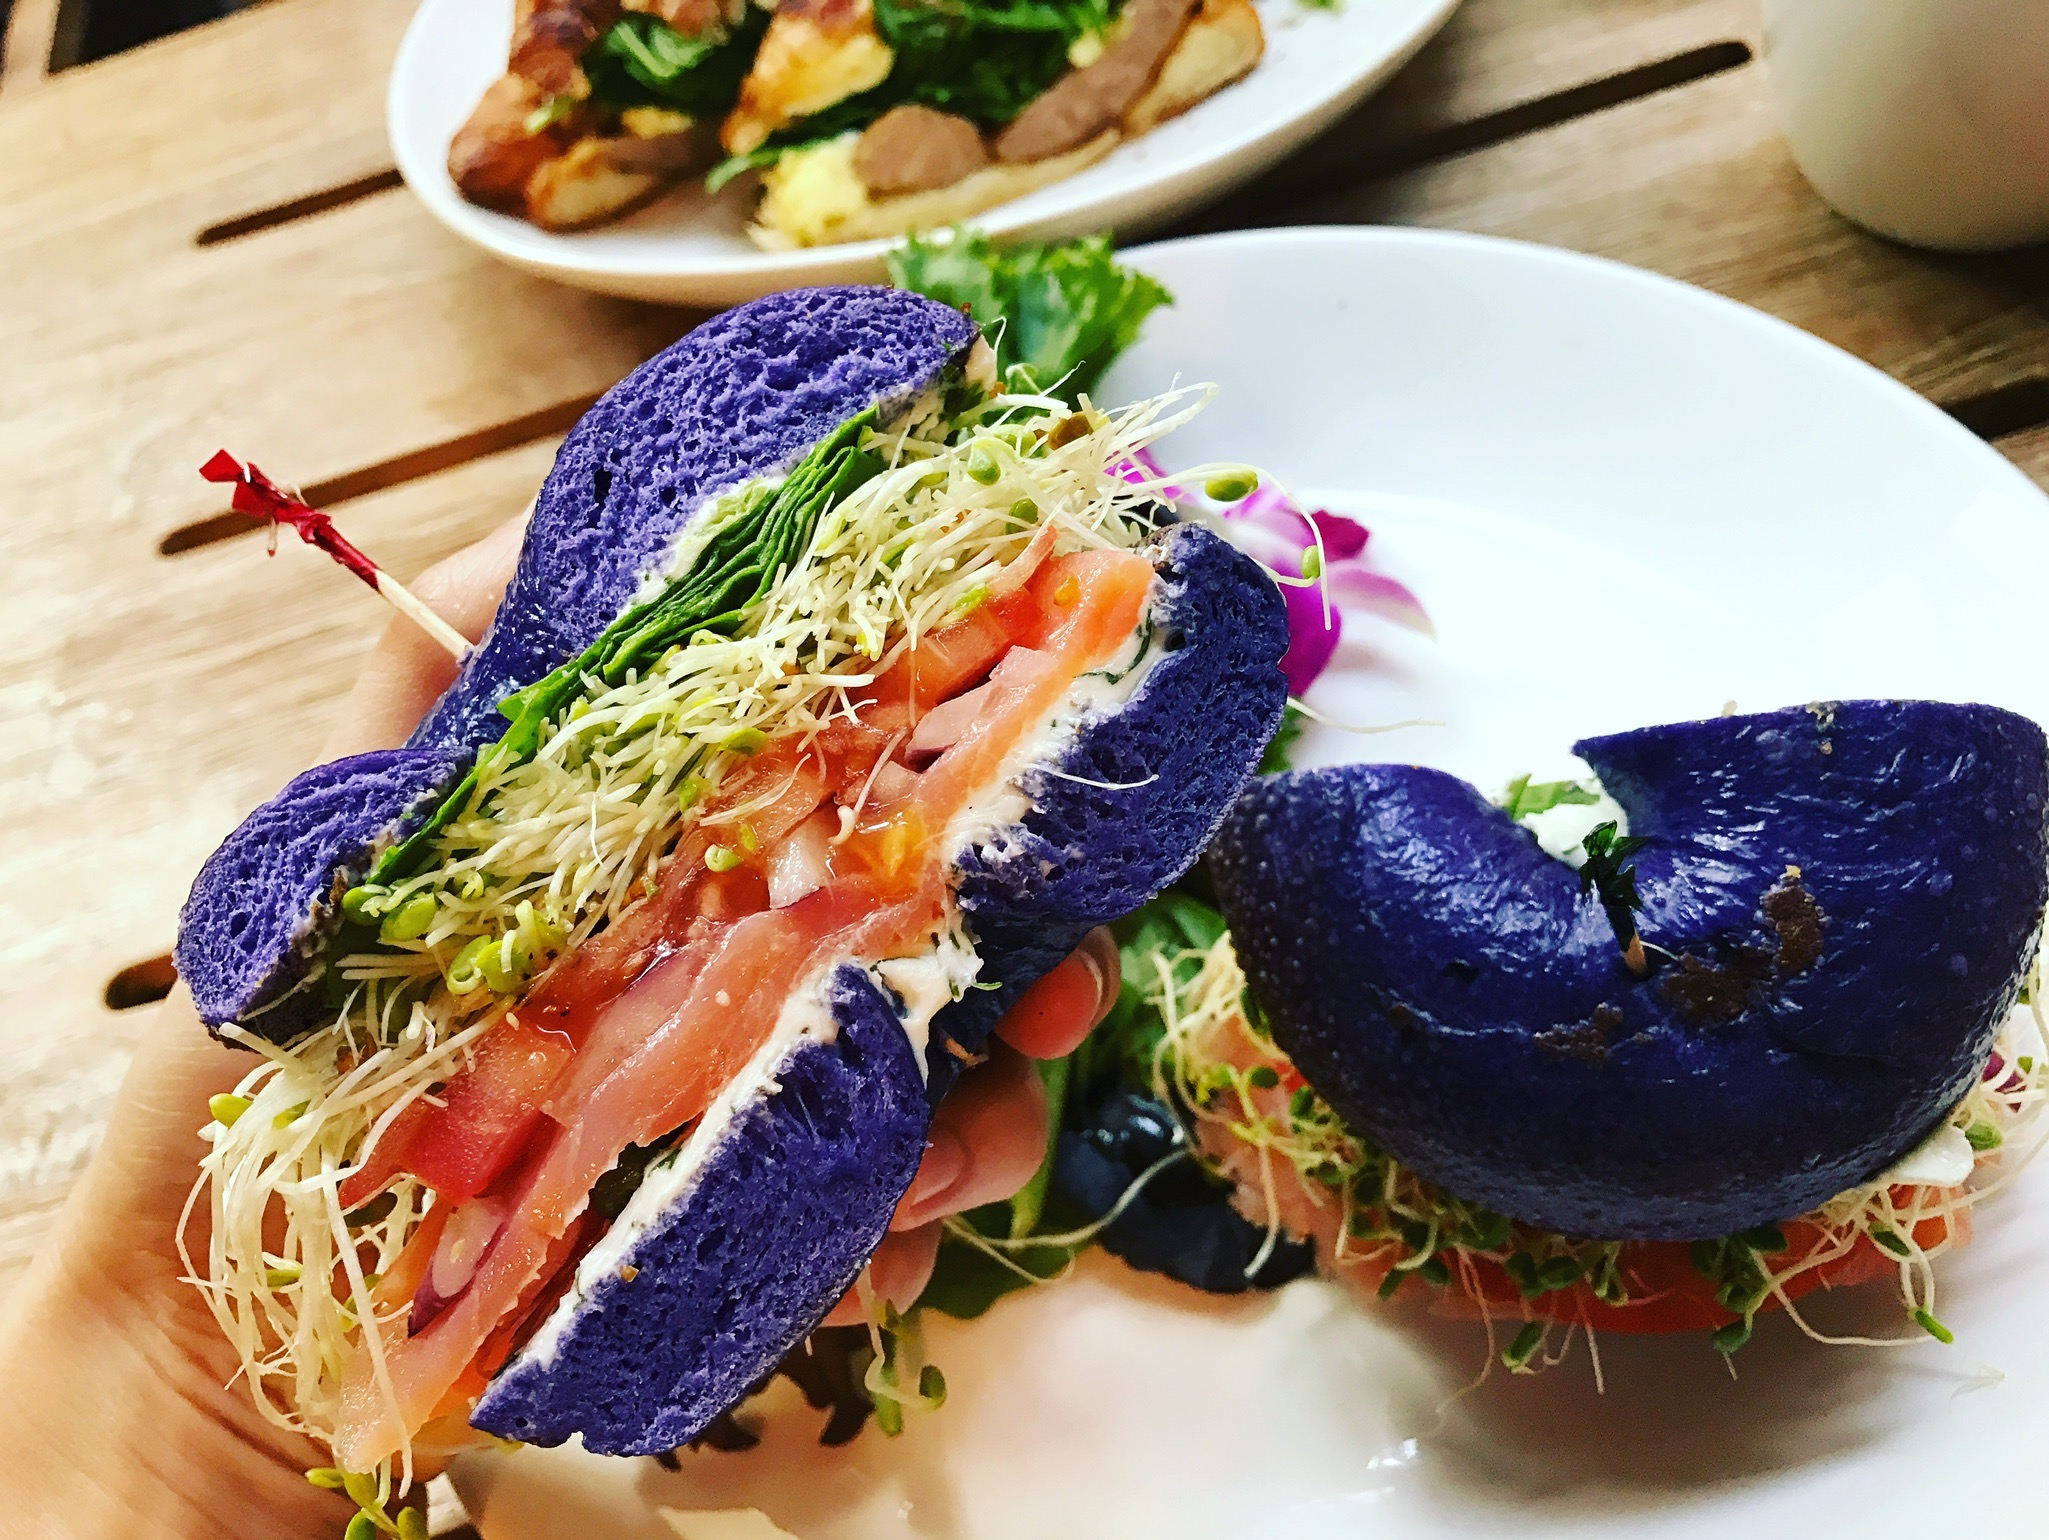 The Stunning Taro Bagel full of fresh goodies: This is breakfast heaven :)